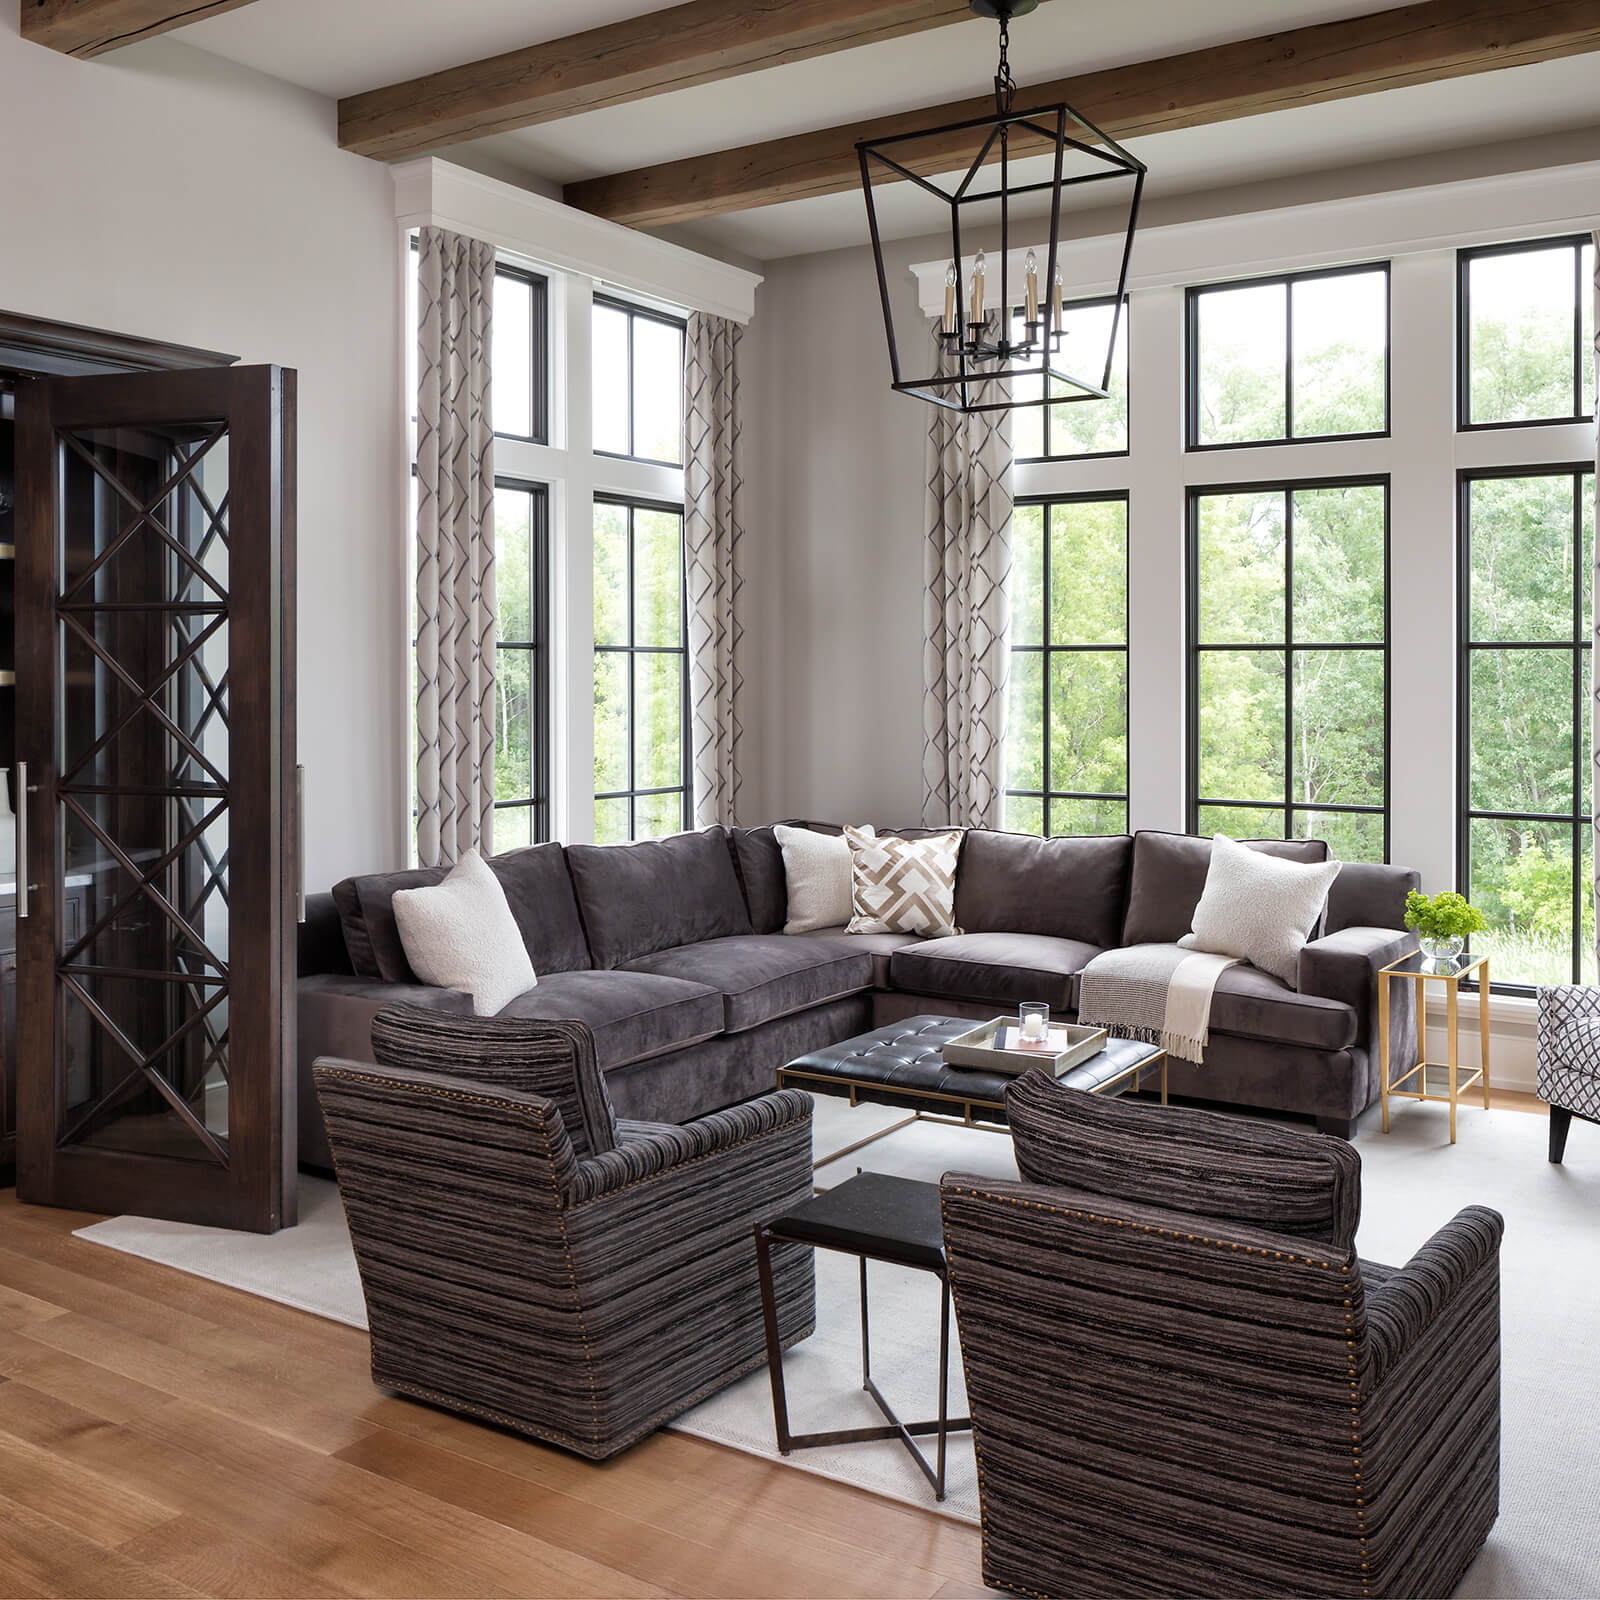 Large living area with tall ceilings and exposed beams with large Marvin Signature Ultimate Casement Windows